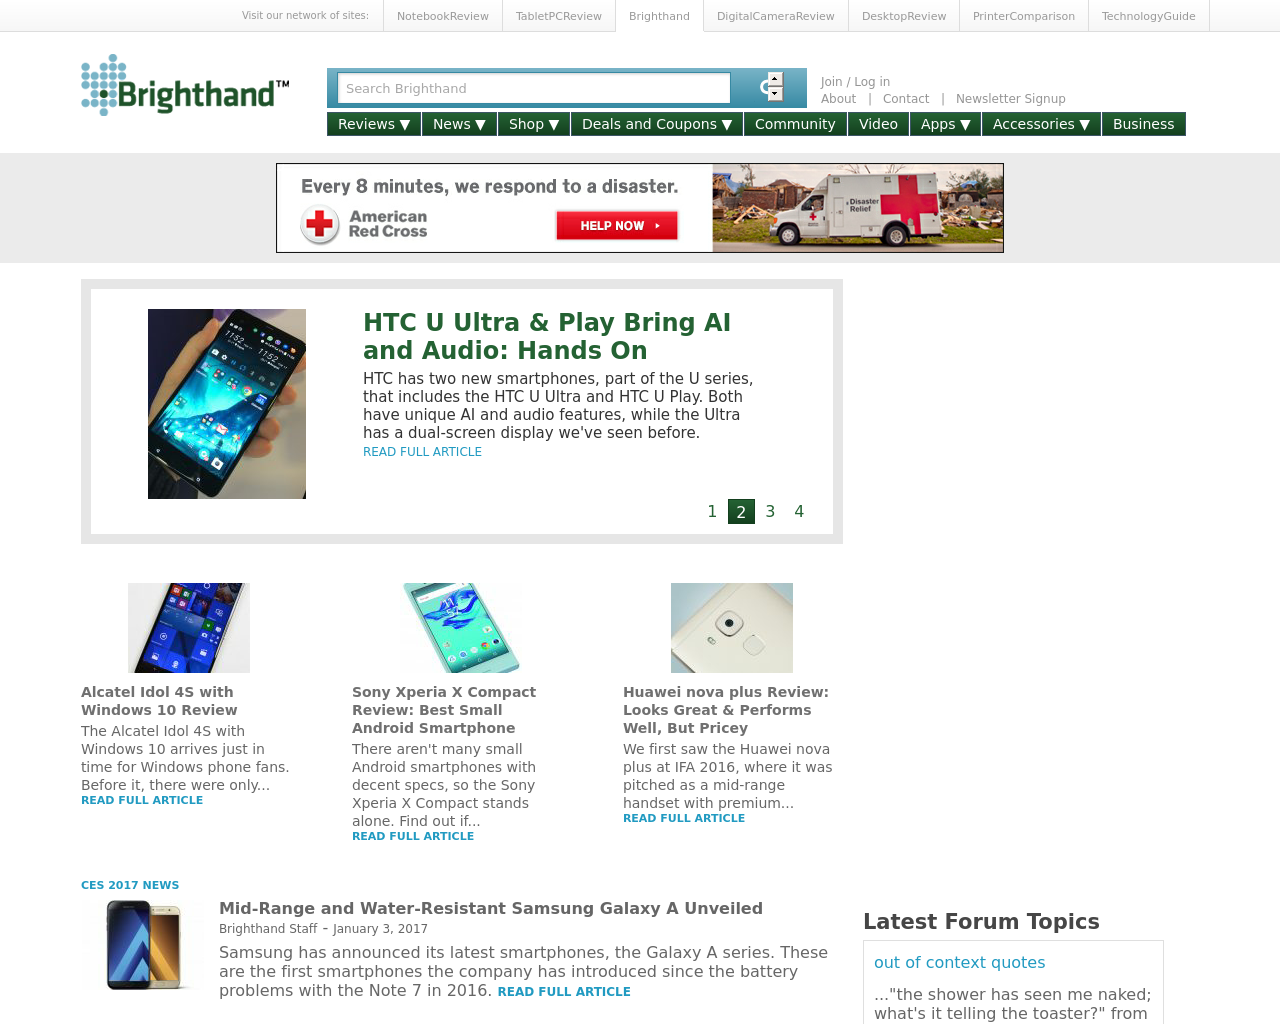 BrightHand-(SmartPhone-News-And-Reviews)-Advertising-Reviews-Pricing